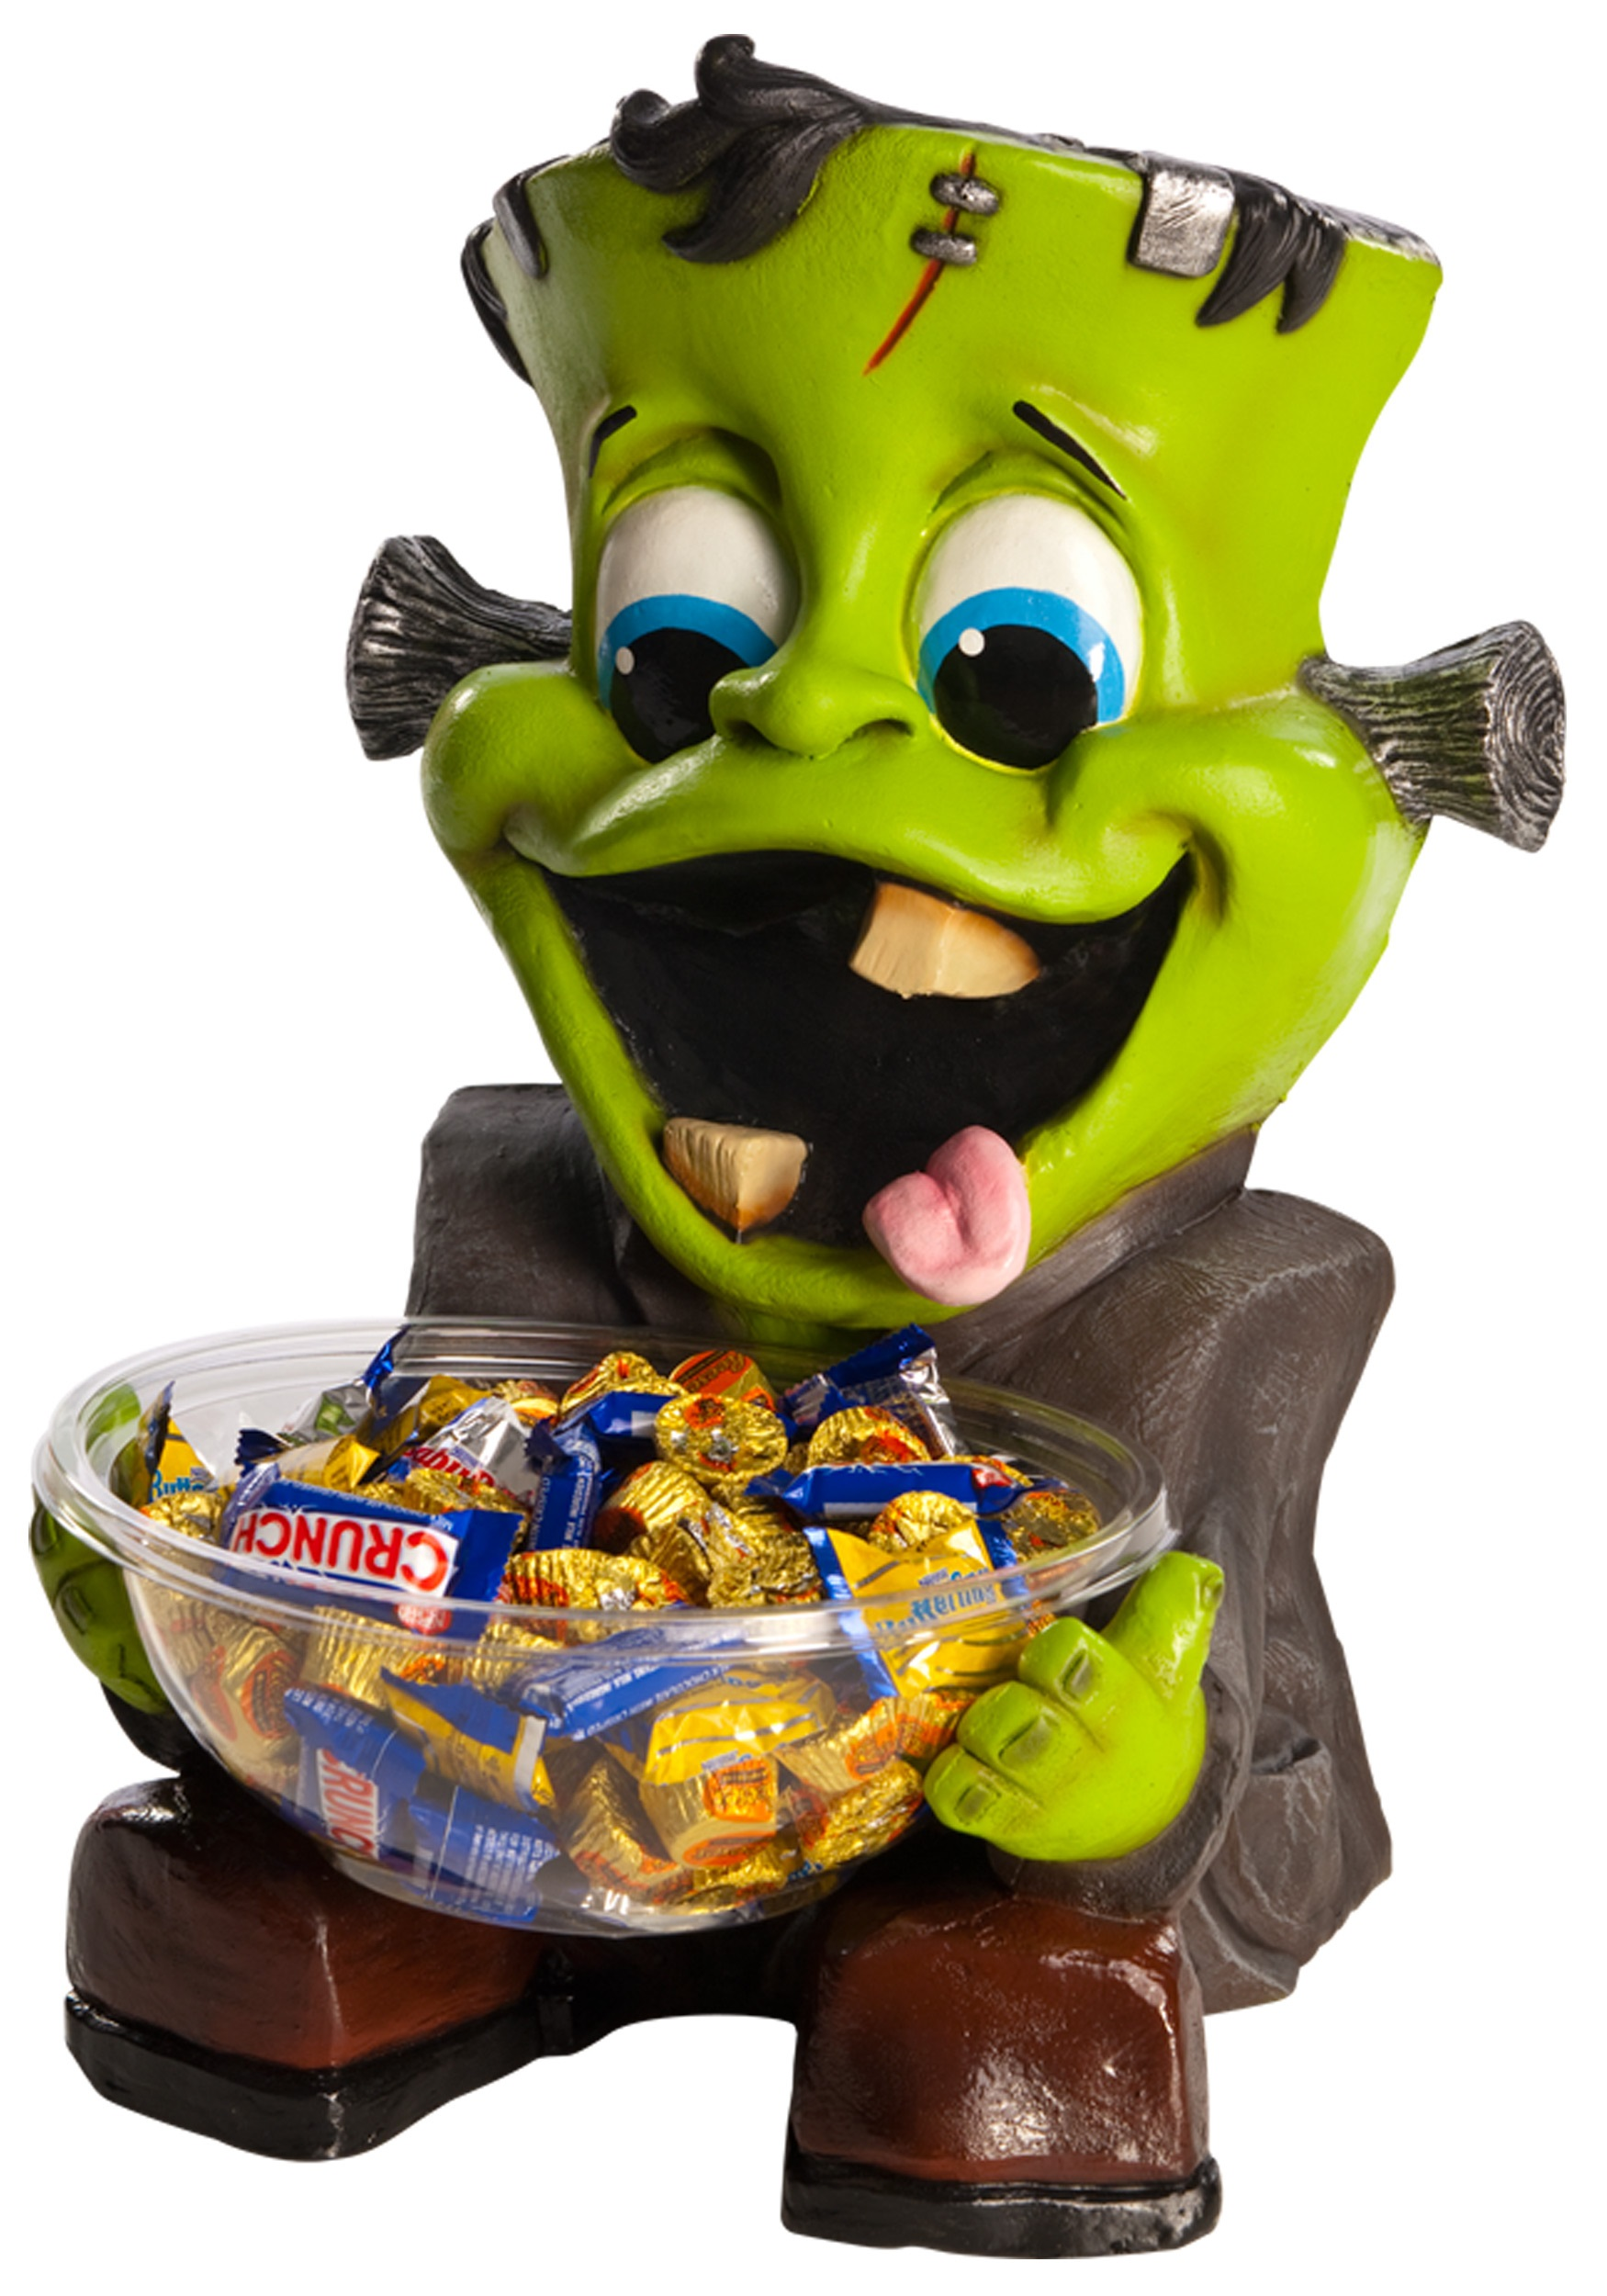 frankie candy bowl holder - halloween costume ideas 2018